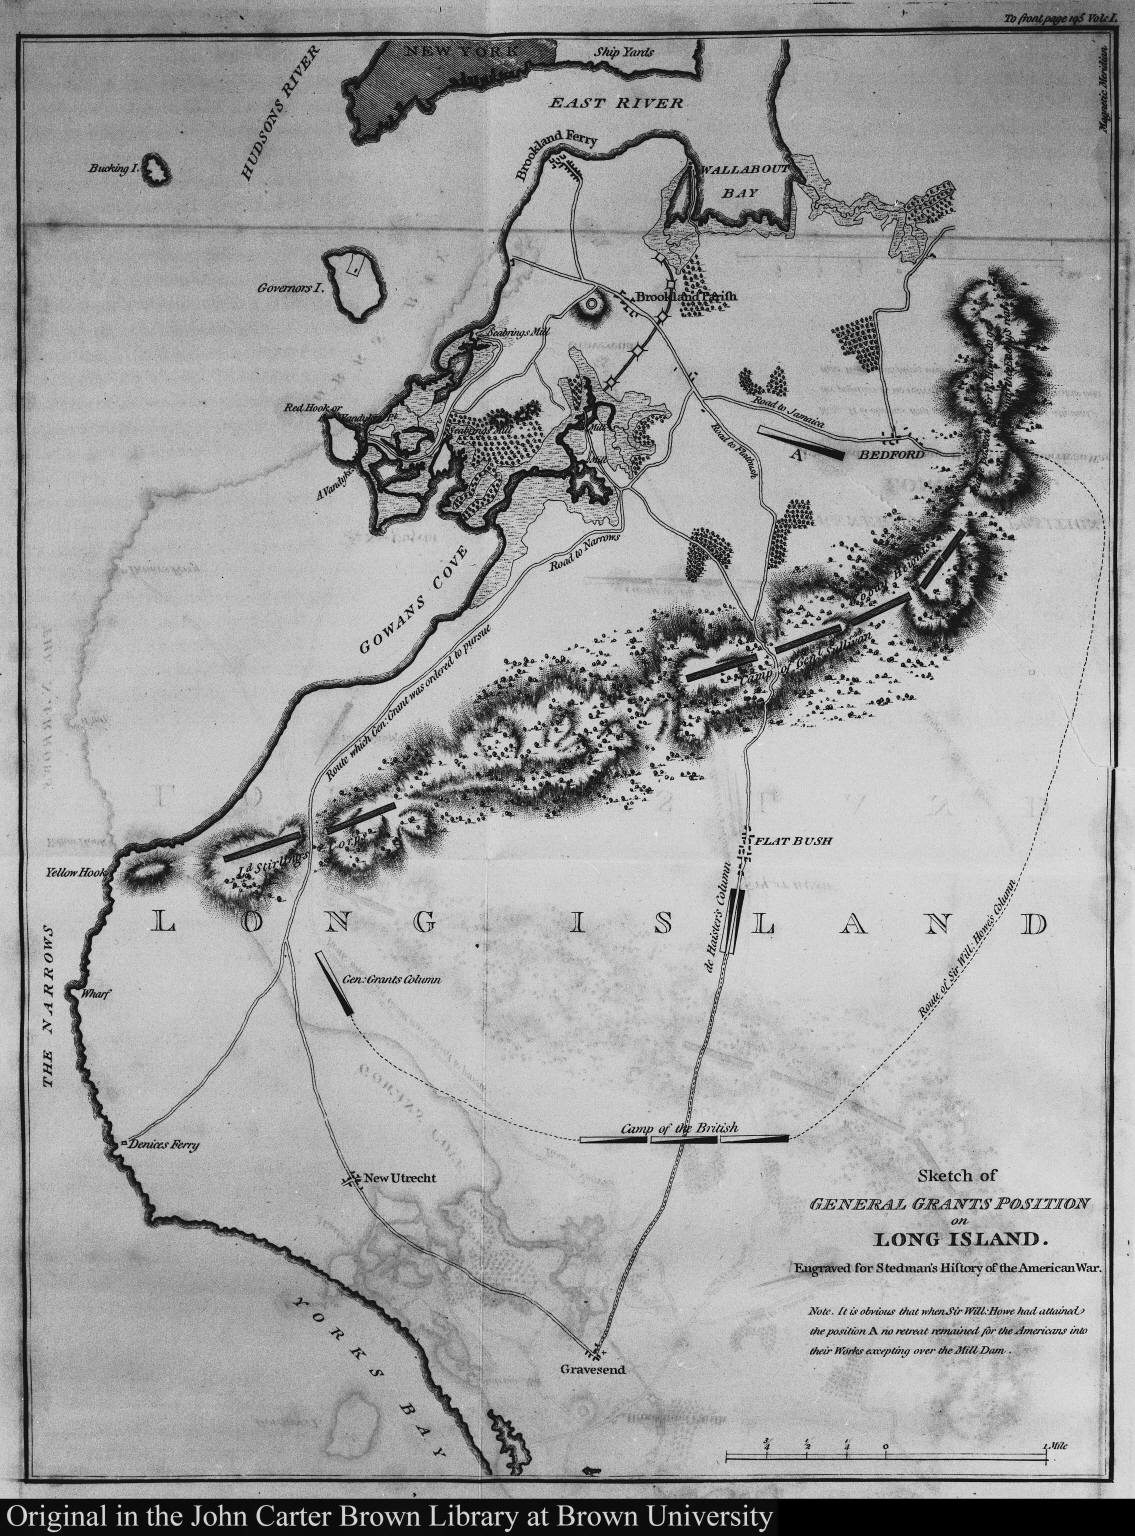 Sketch of General Grants position on Long Island. Engraved for Stedman's History of the American War